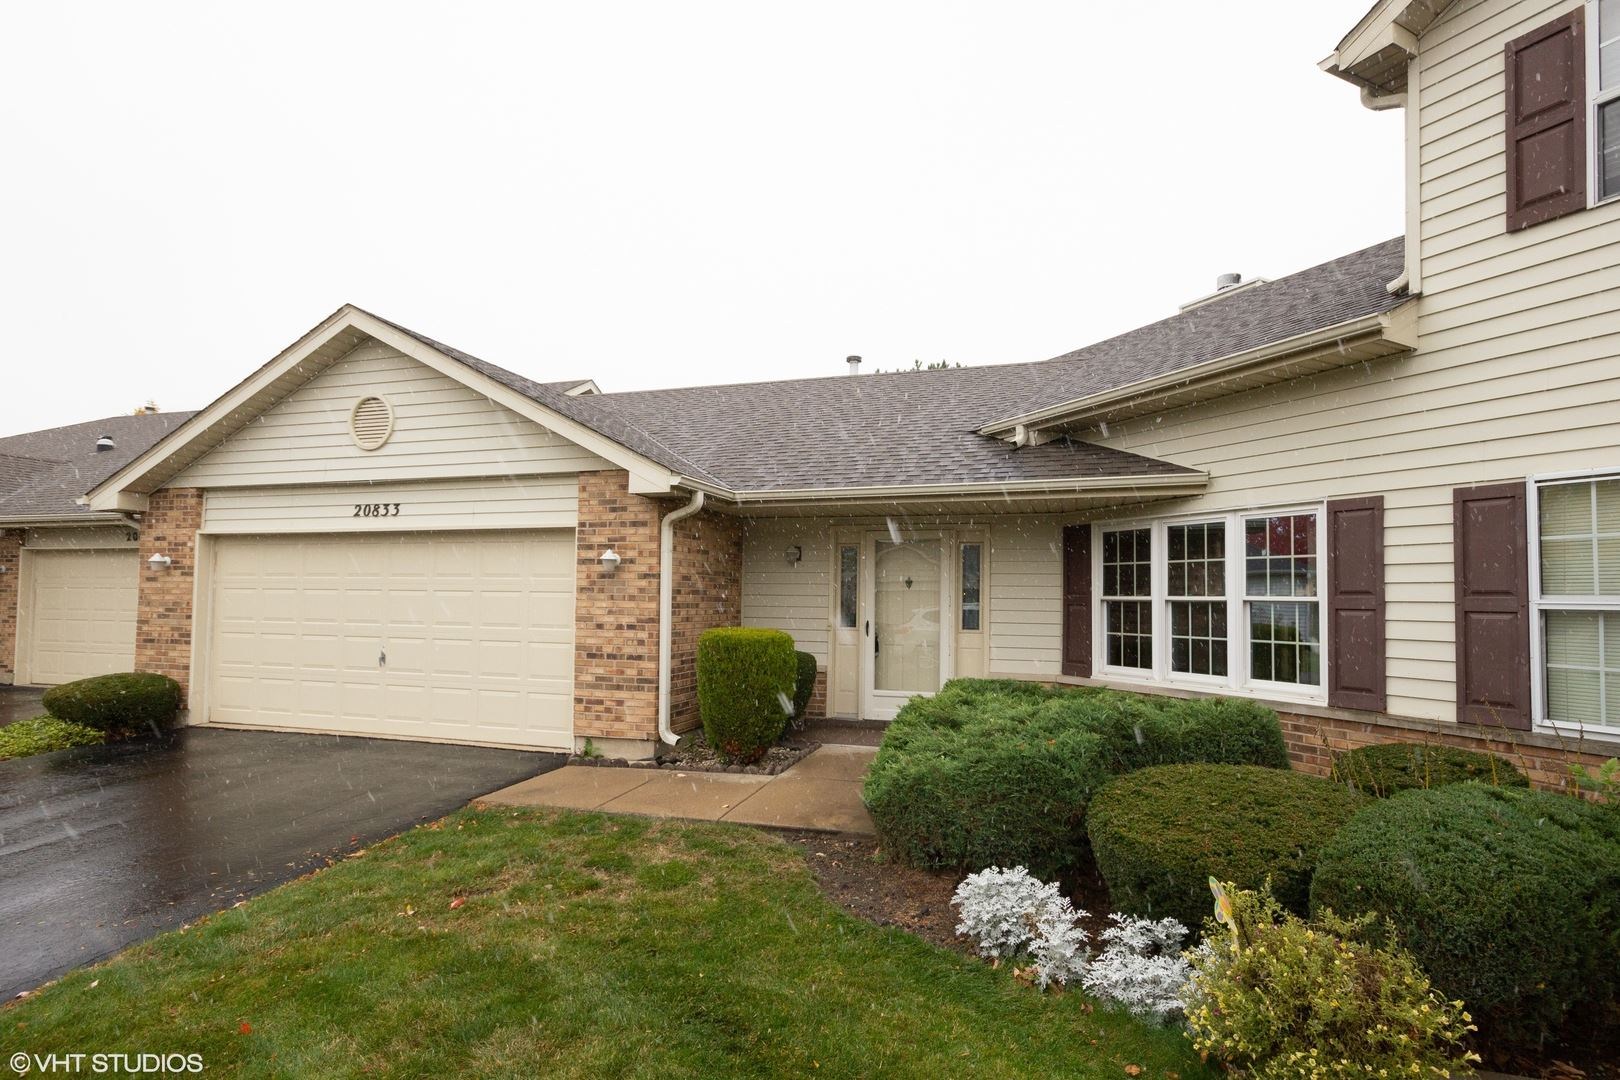 Photo of 20833 W Peppertree Court, Plainfield, IL 60544 (MLS # 10917740)